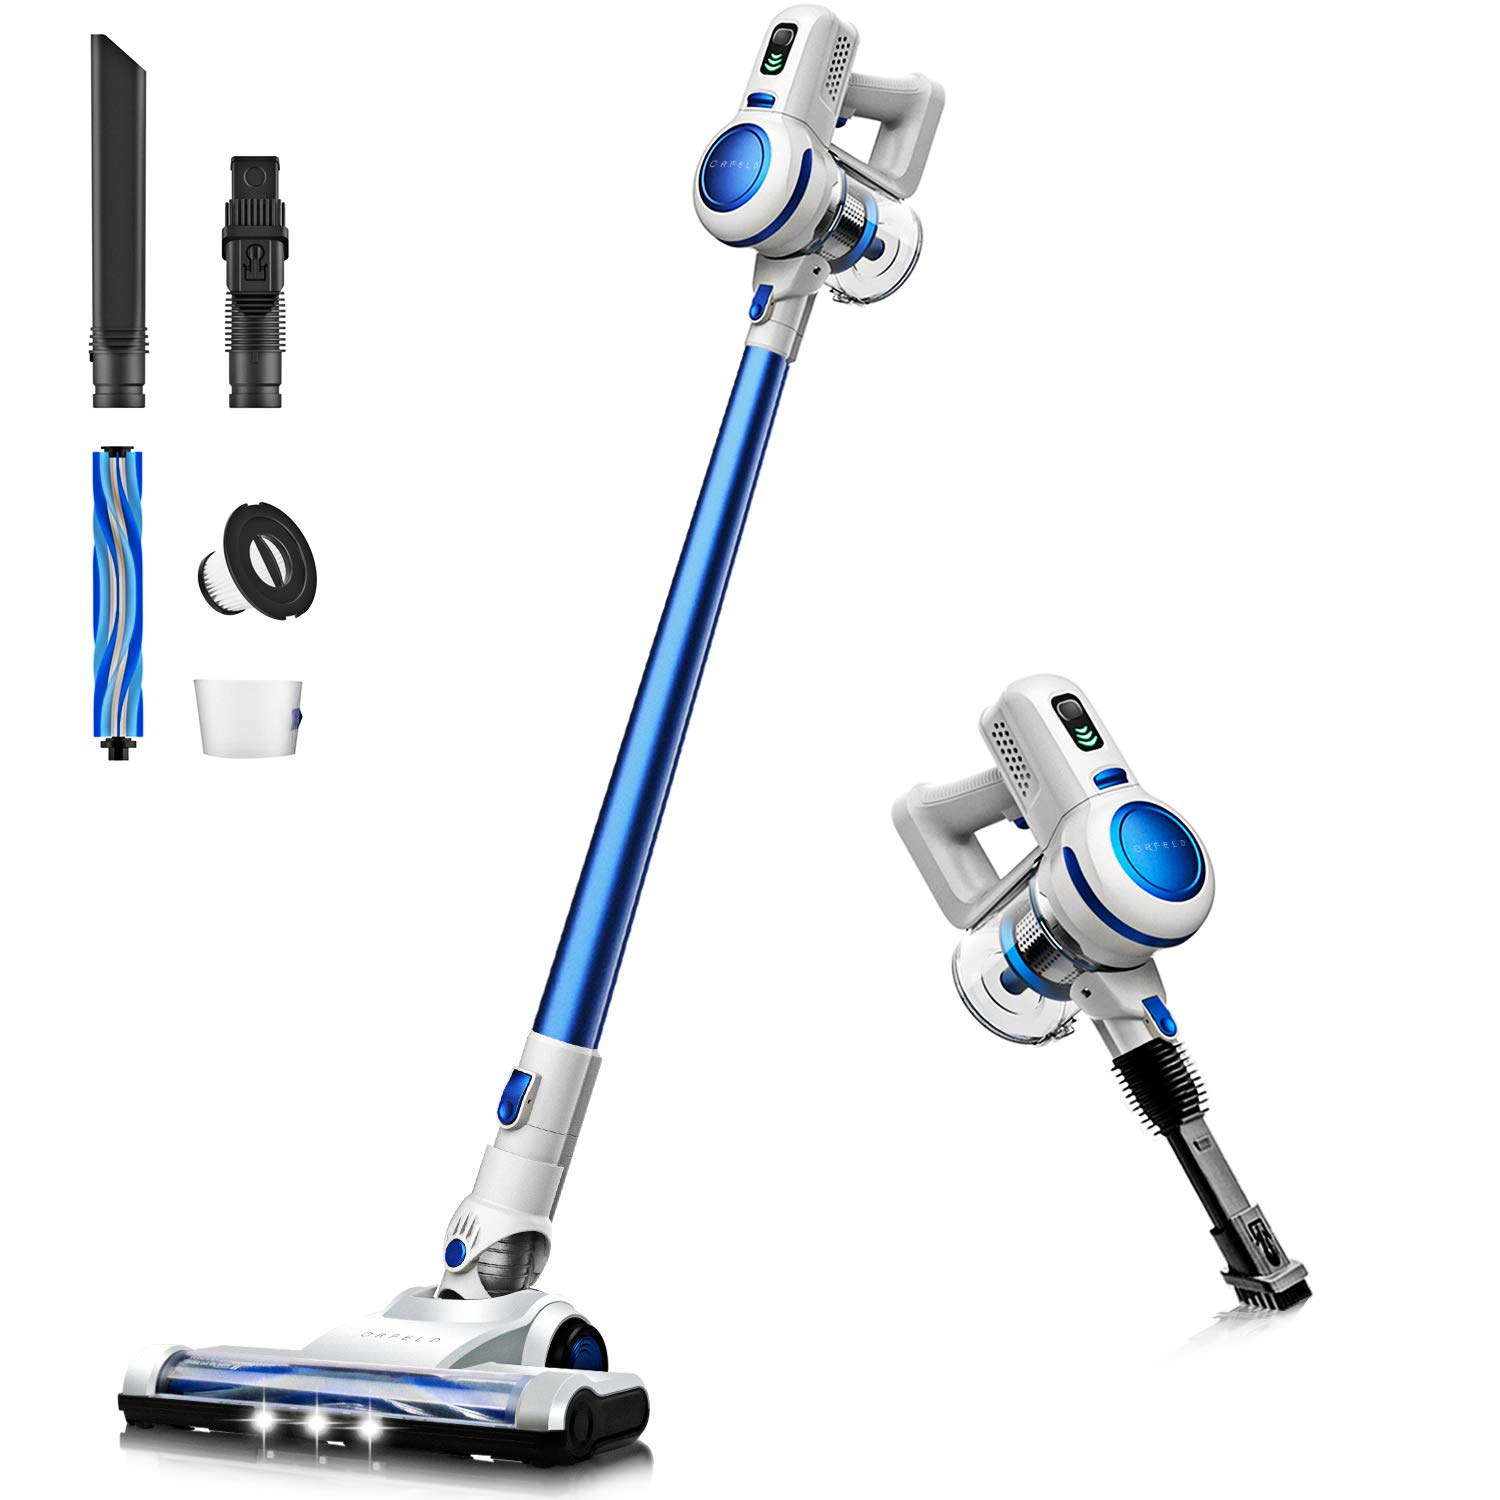 Cordless Cleaner Digital Powerful Cleaning